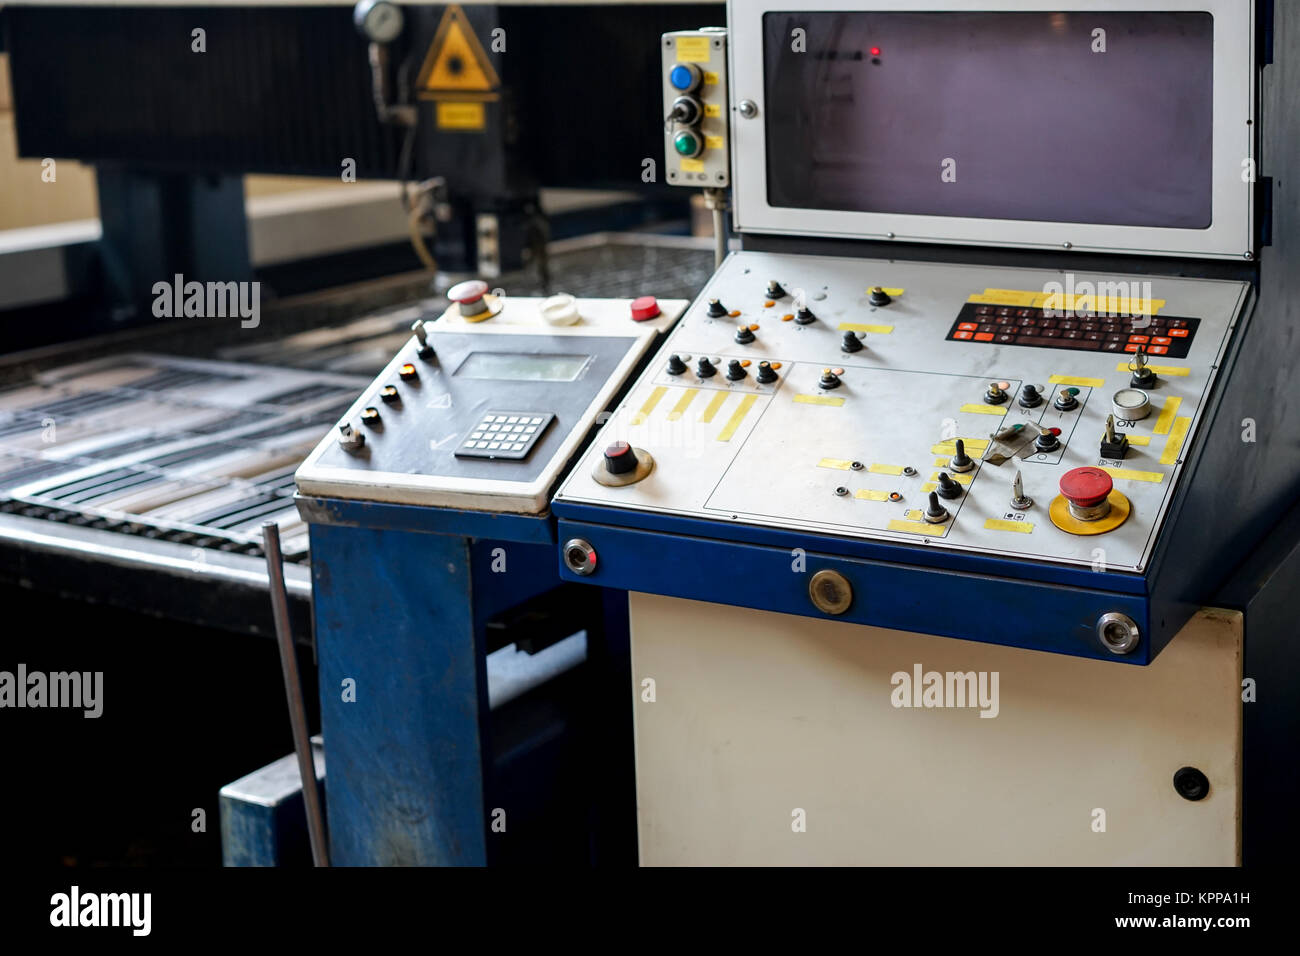 control panel of a laser cutting machinery - Stock Image